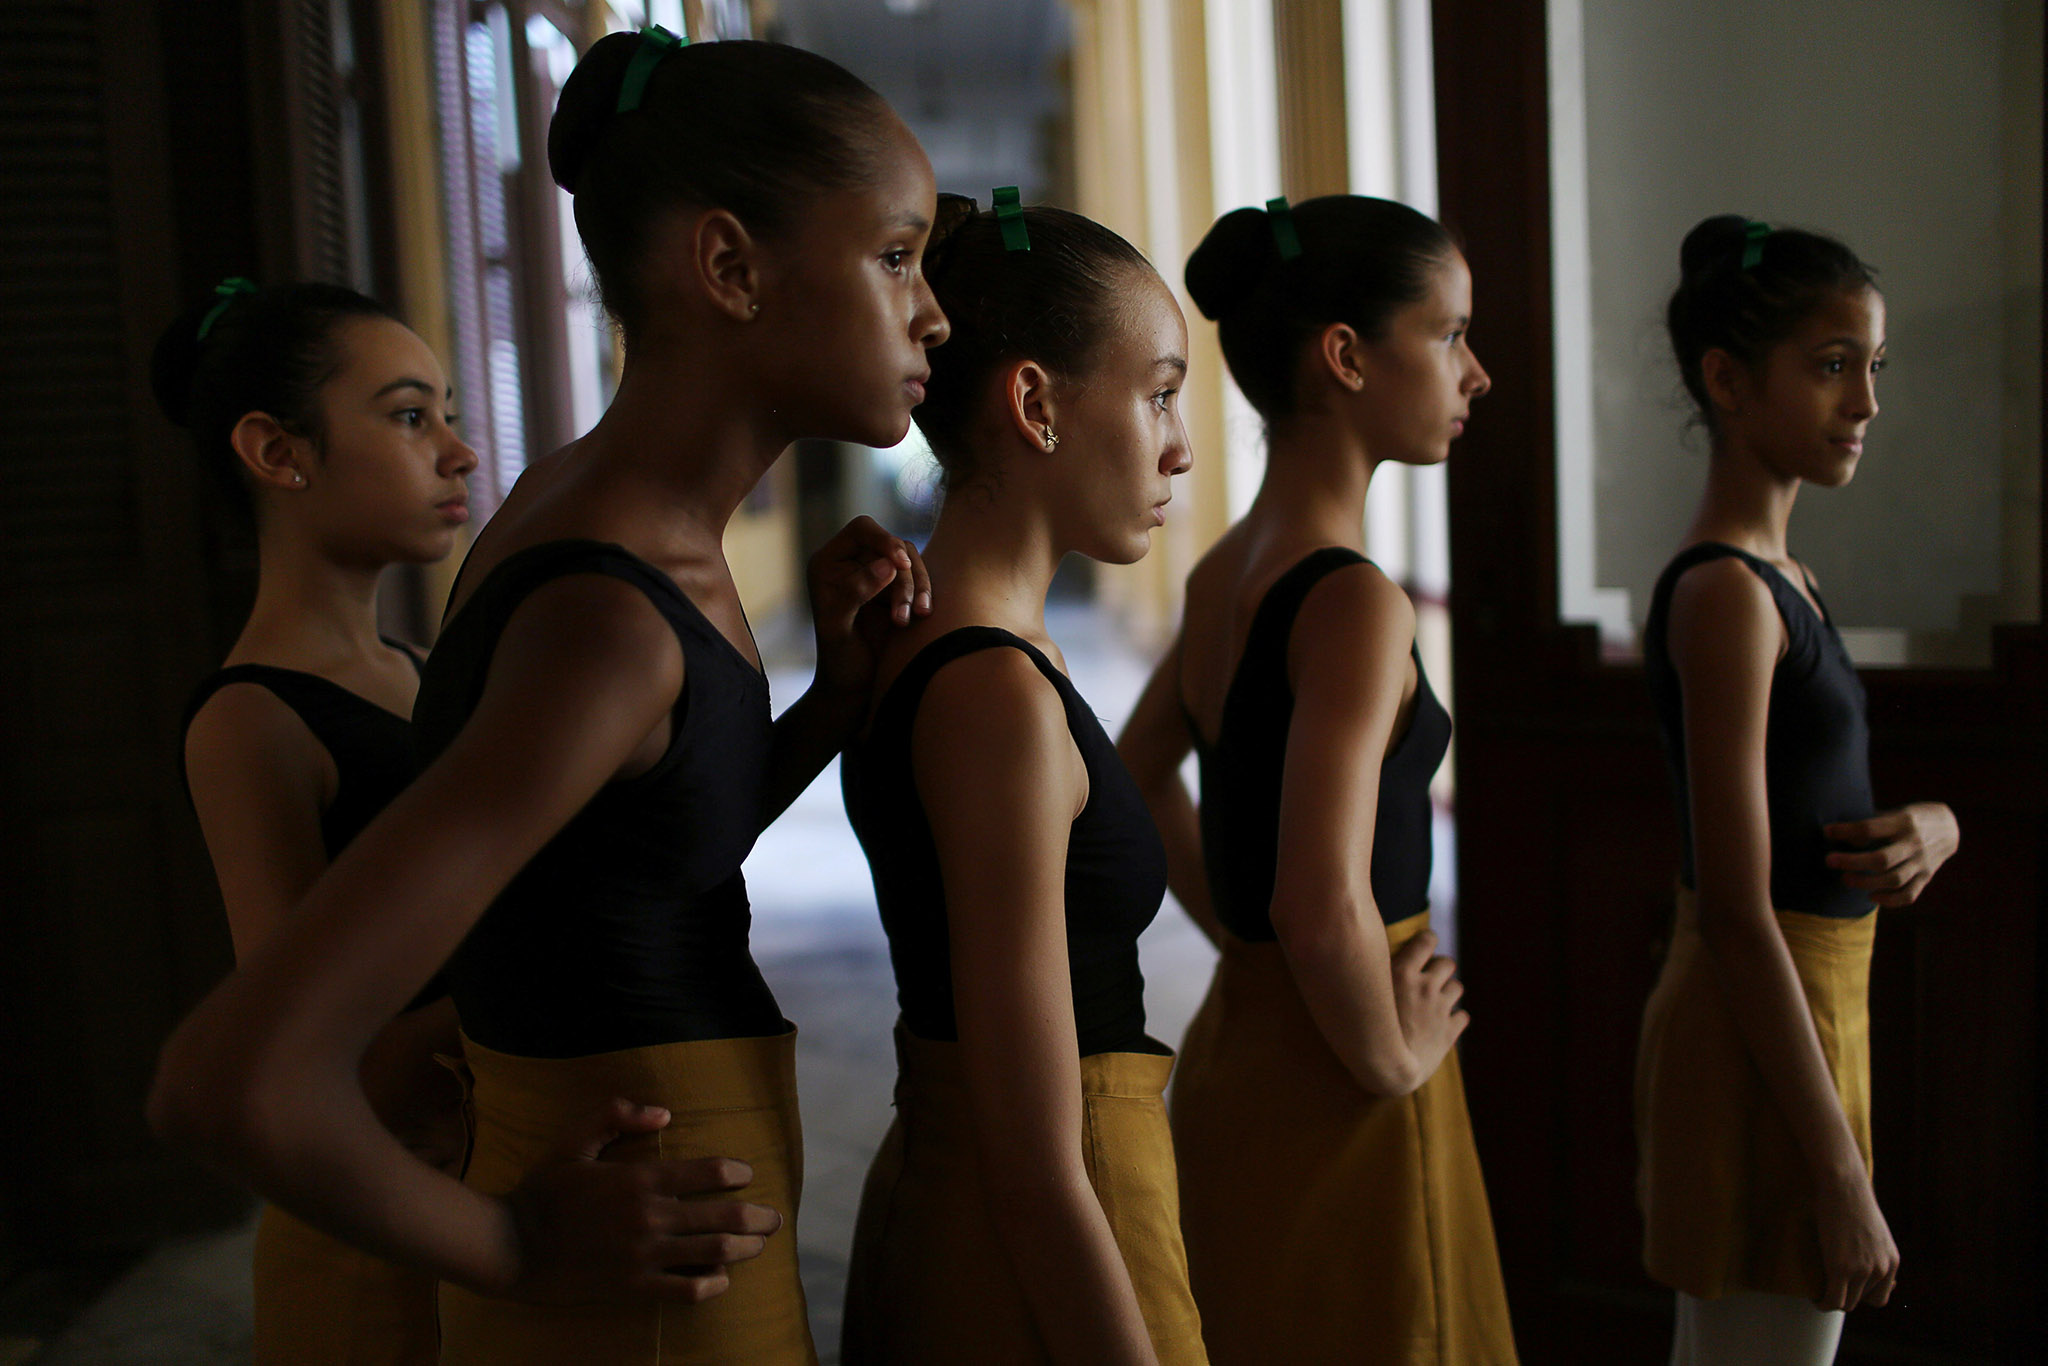 Students at the Cuba's National Ballet School (ENB) wait in line to enter a classroom in Havana, Cuba, October 12, 2016. Picture taken October 12, 2016. REUTERS/Alexandre Meneghini